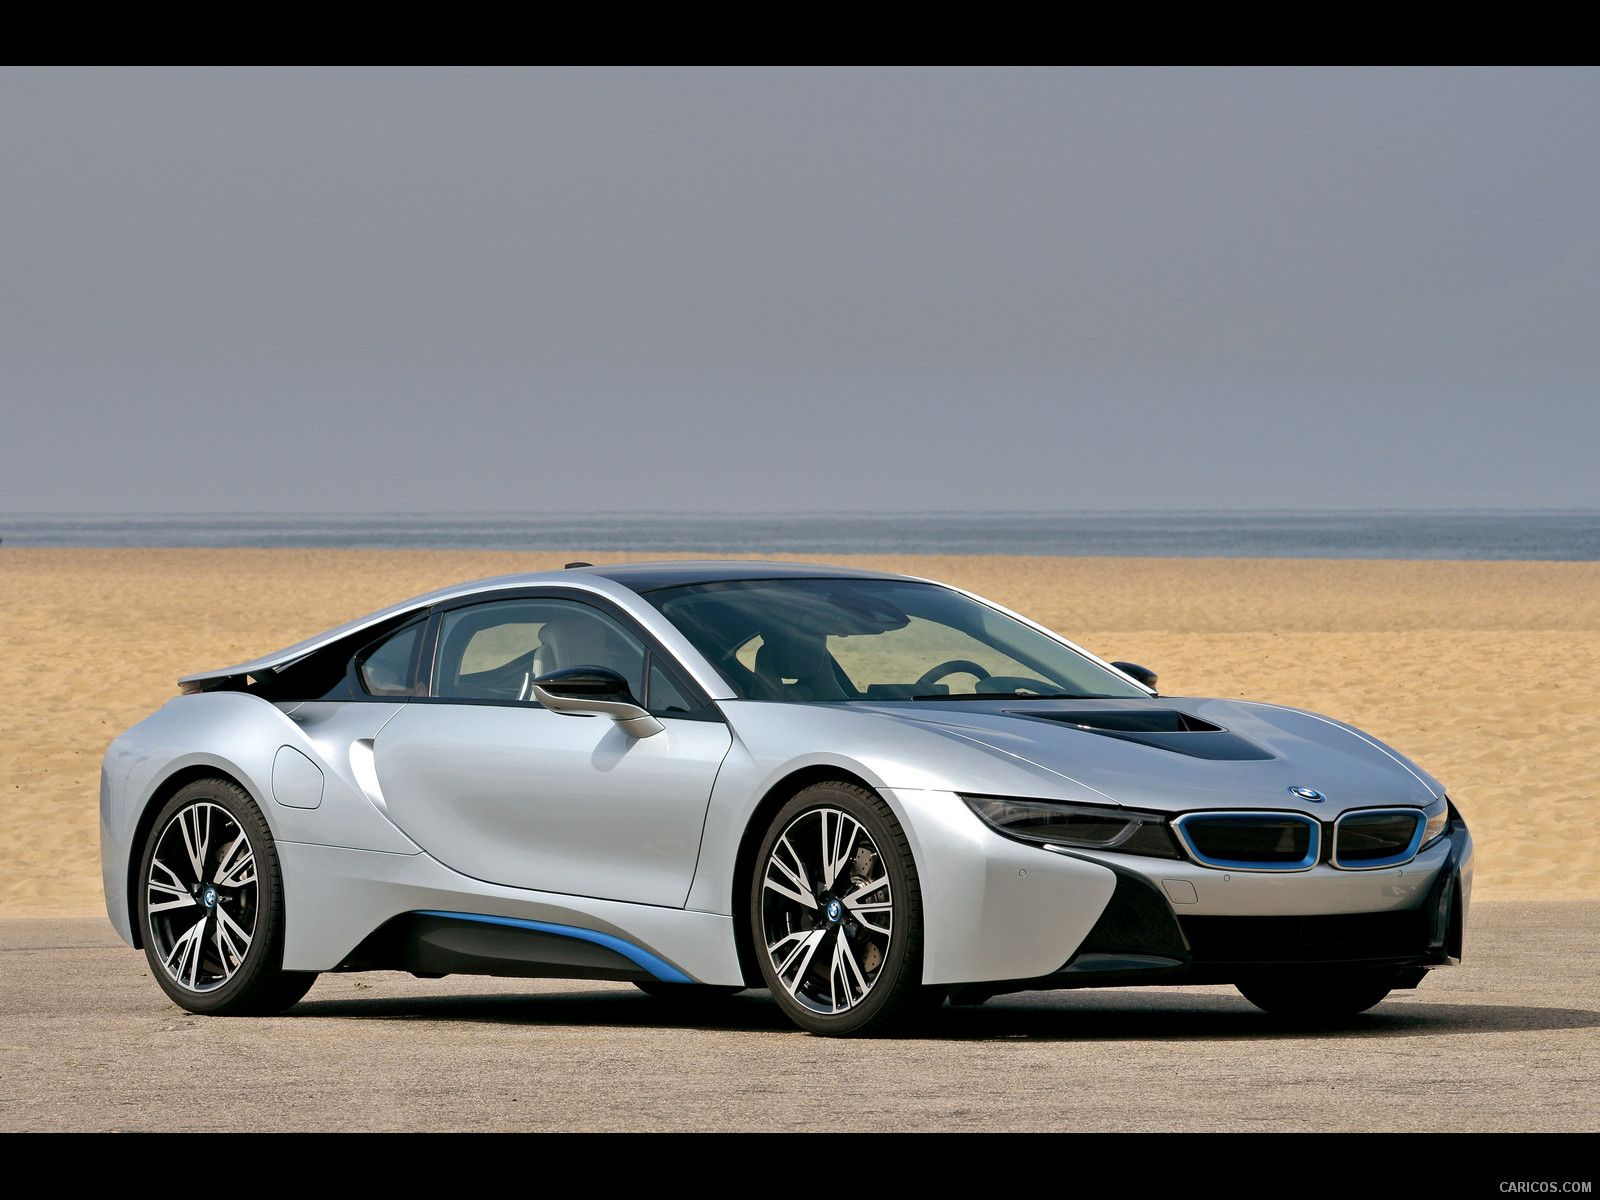 2015_bmw_i8 Hybrid sports car, Cool sports cars, Bmw i8